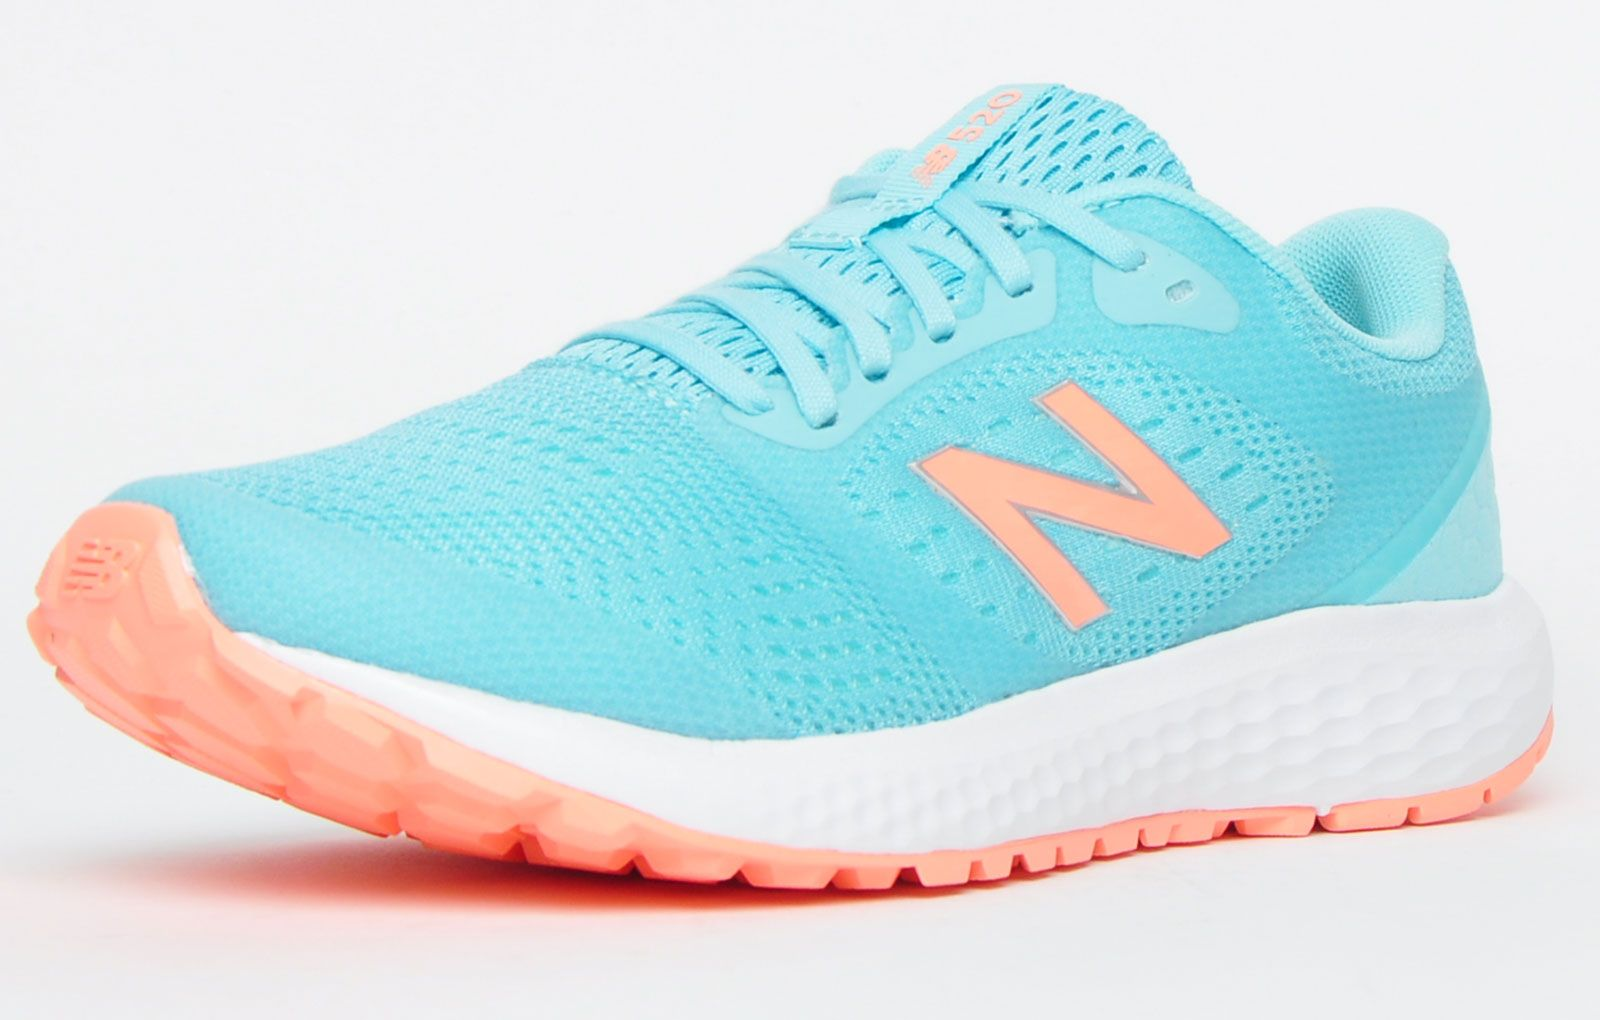 New Balance 520 v6 Wide Fit Womens